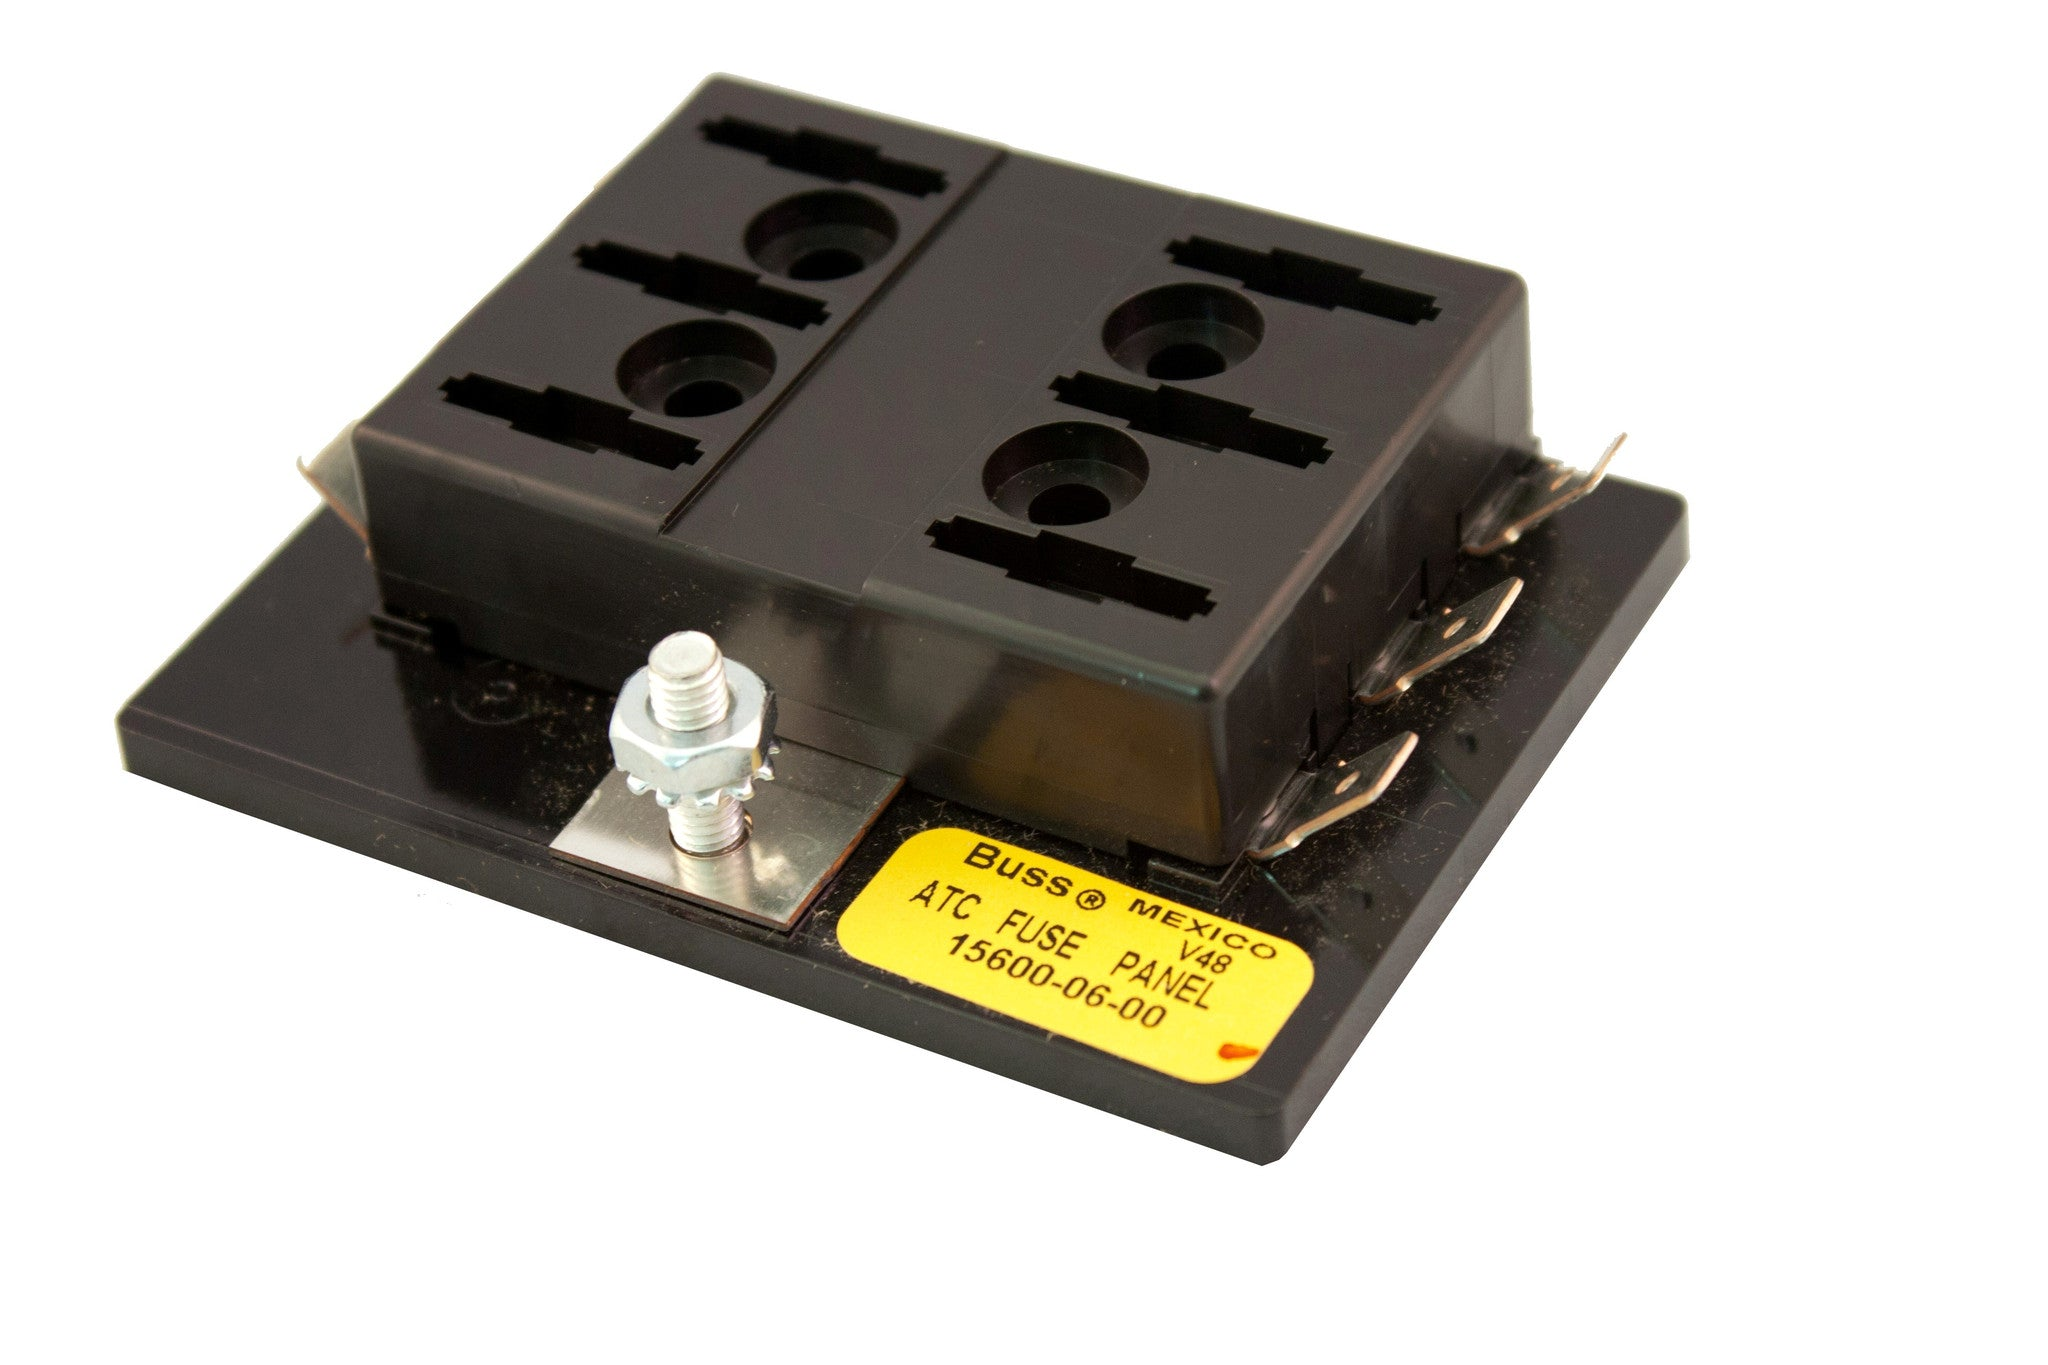 part # 15600-06-20 (bussmann fuse block for atof/atc fuses or ...  road runner connect